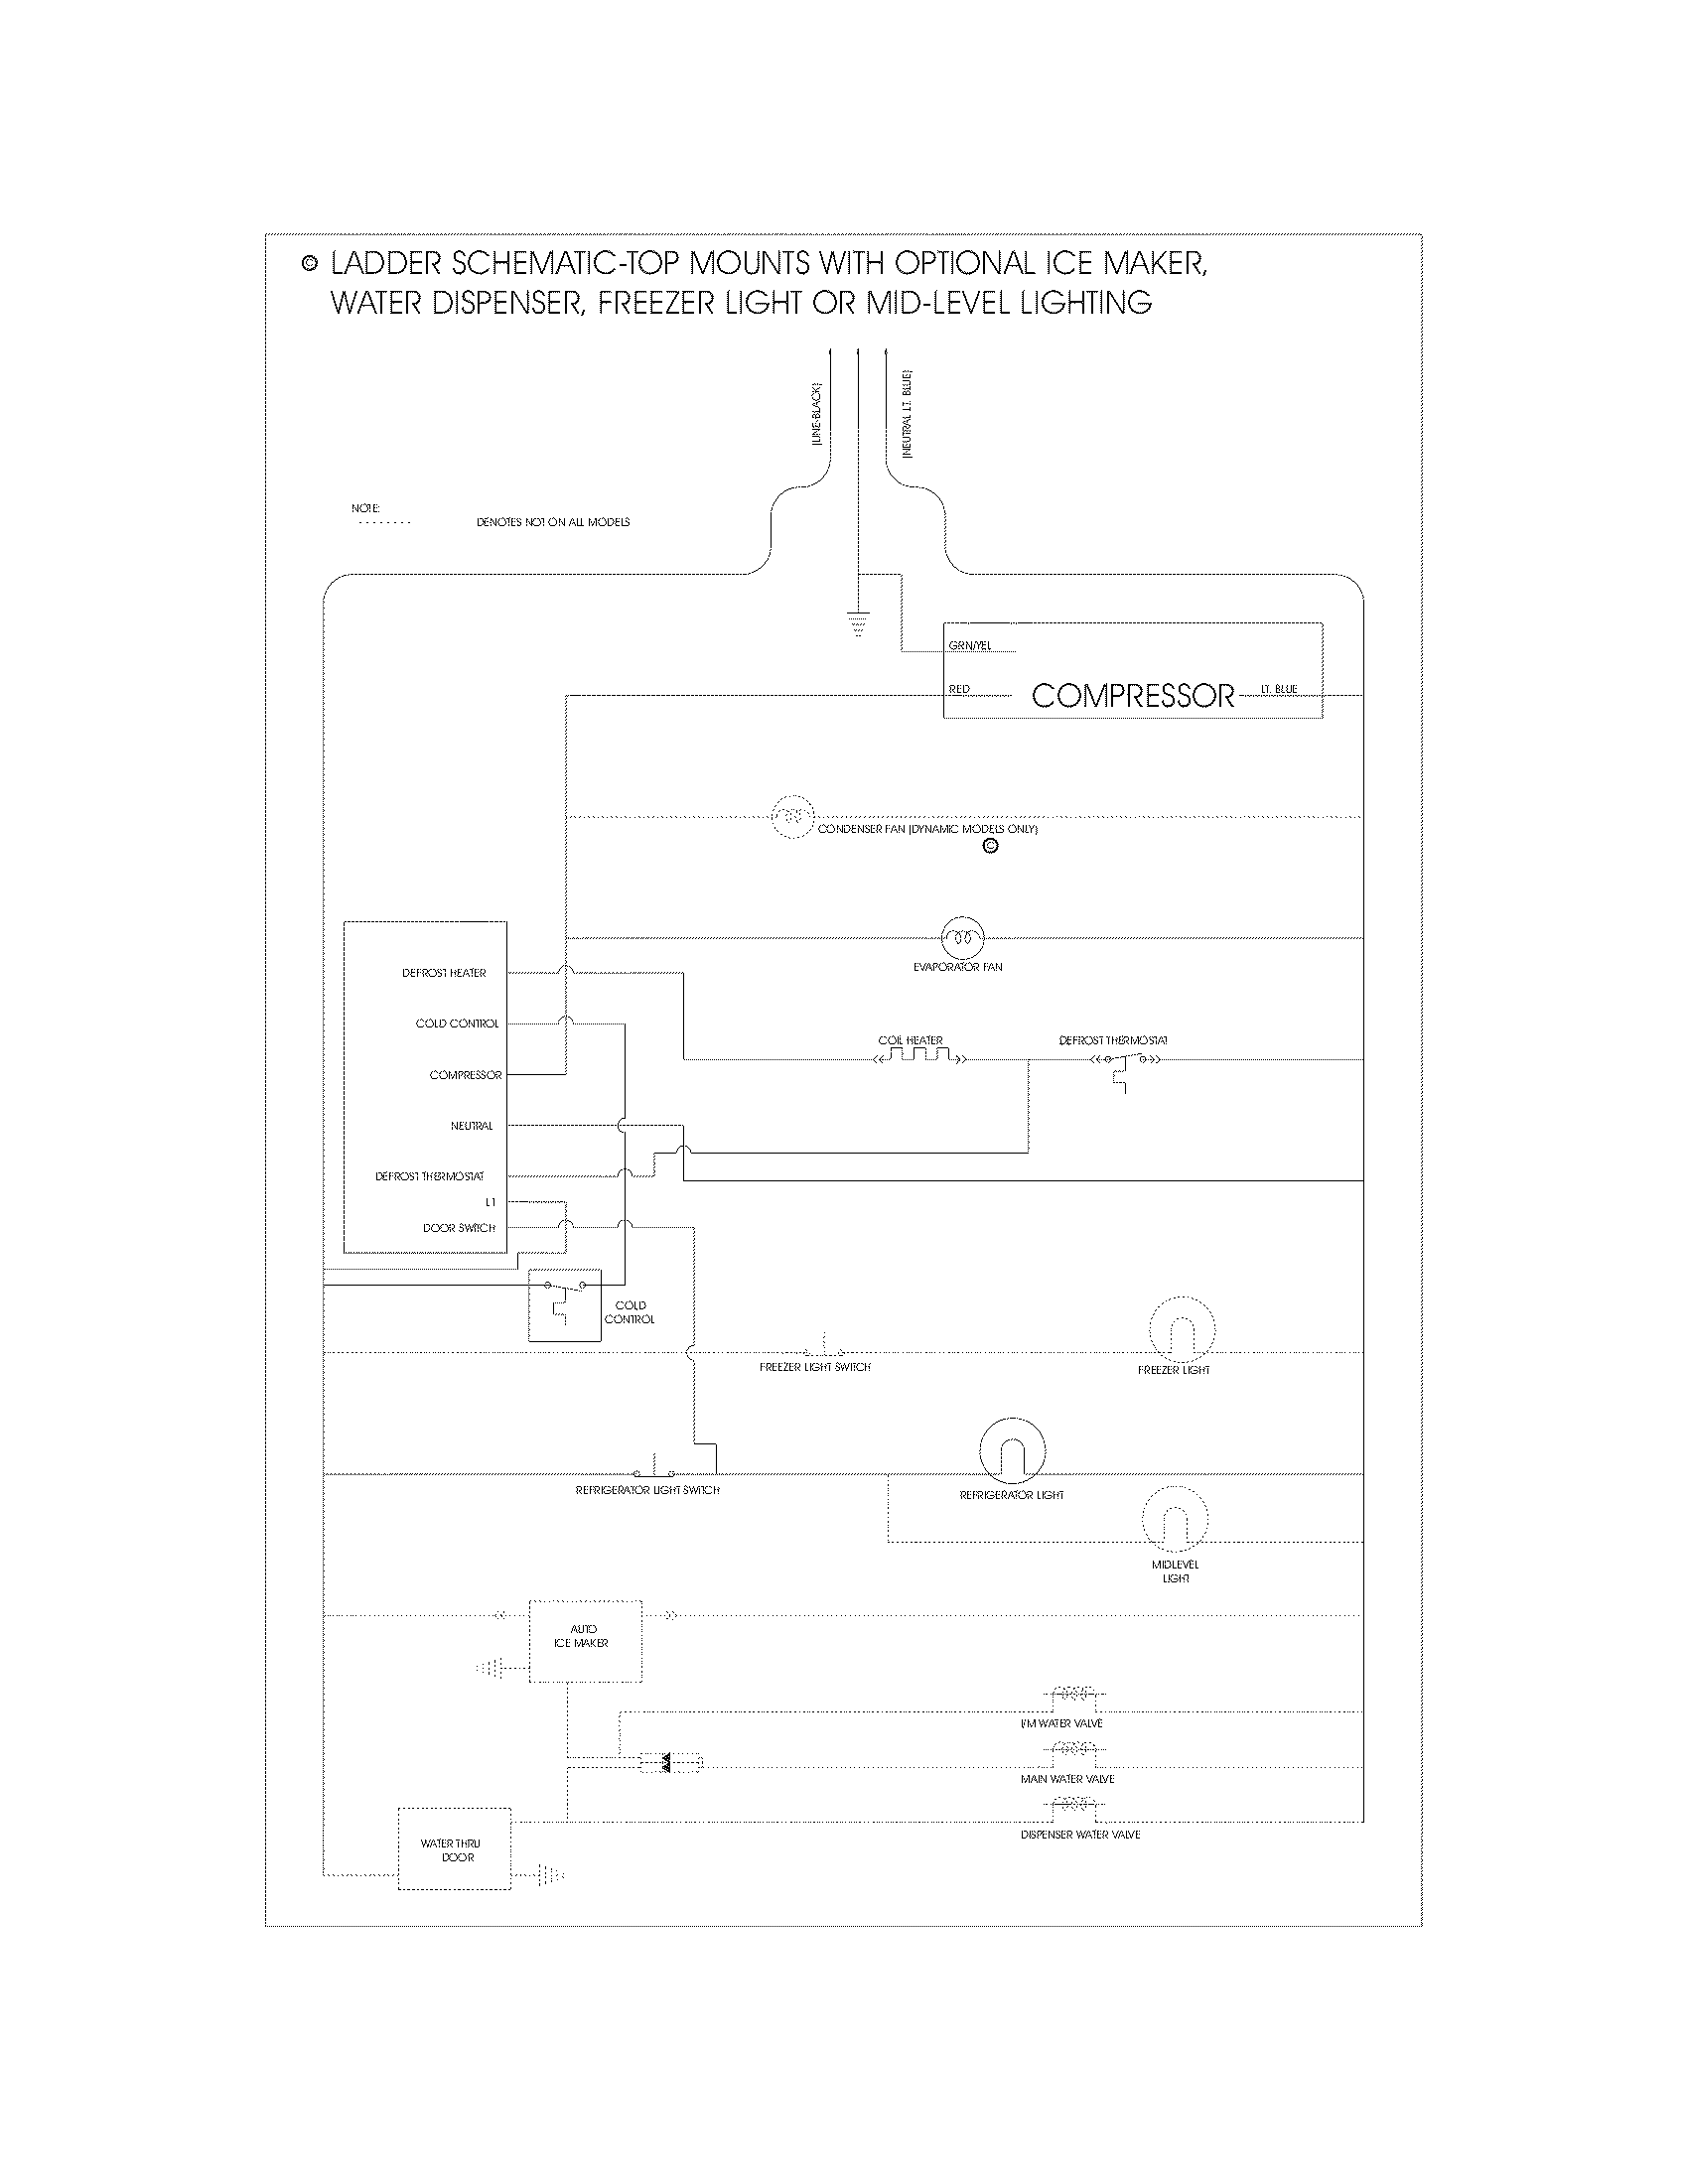 R1403048 00005?resize\=665%2C861\&ssl\=1 wr30x0306 ice maker wiring diagram ge ice maker test cycle Maytag Ice Maker Wiring-Diagram at soozxer.org